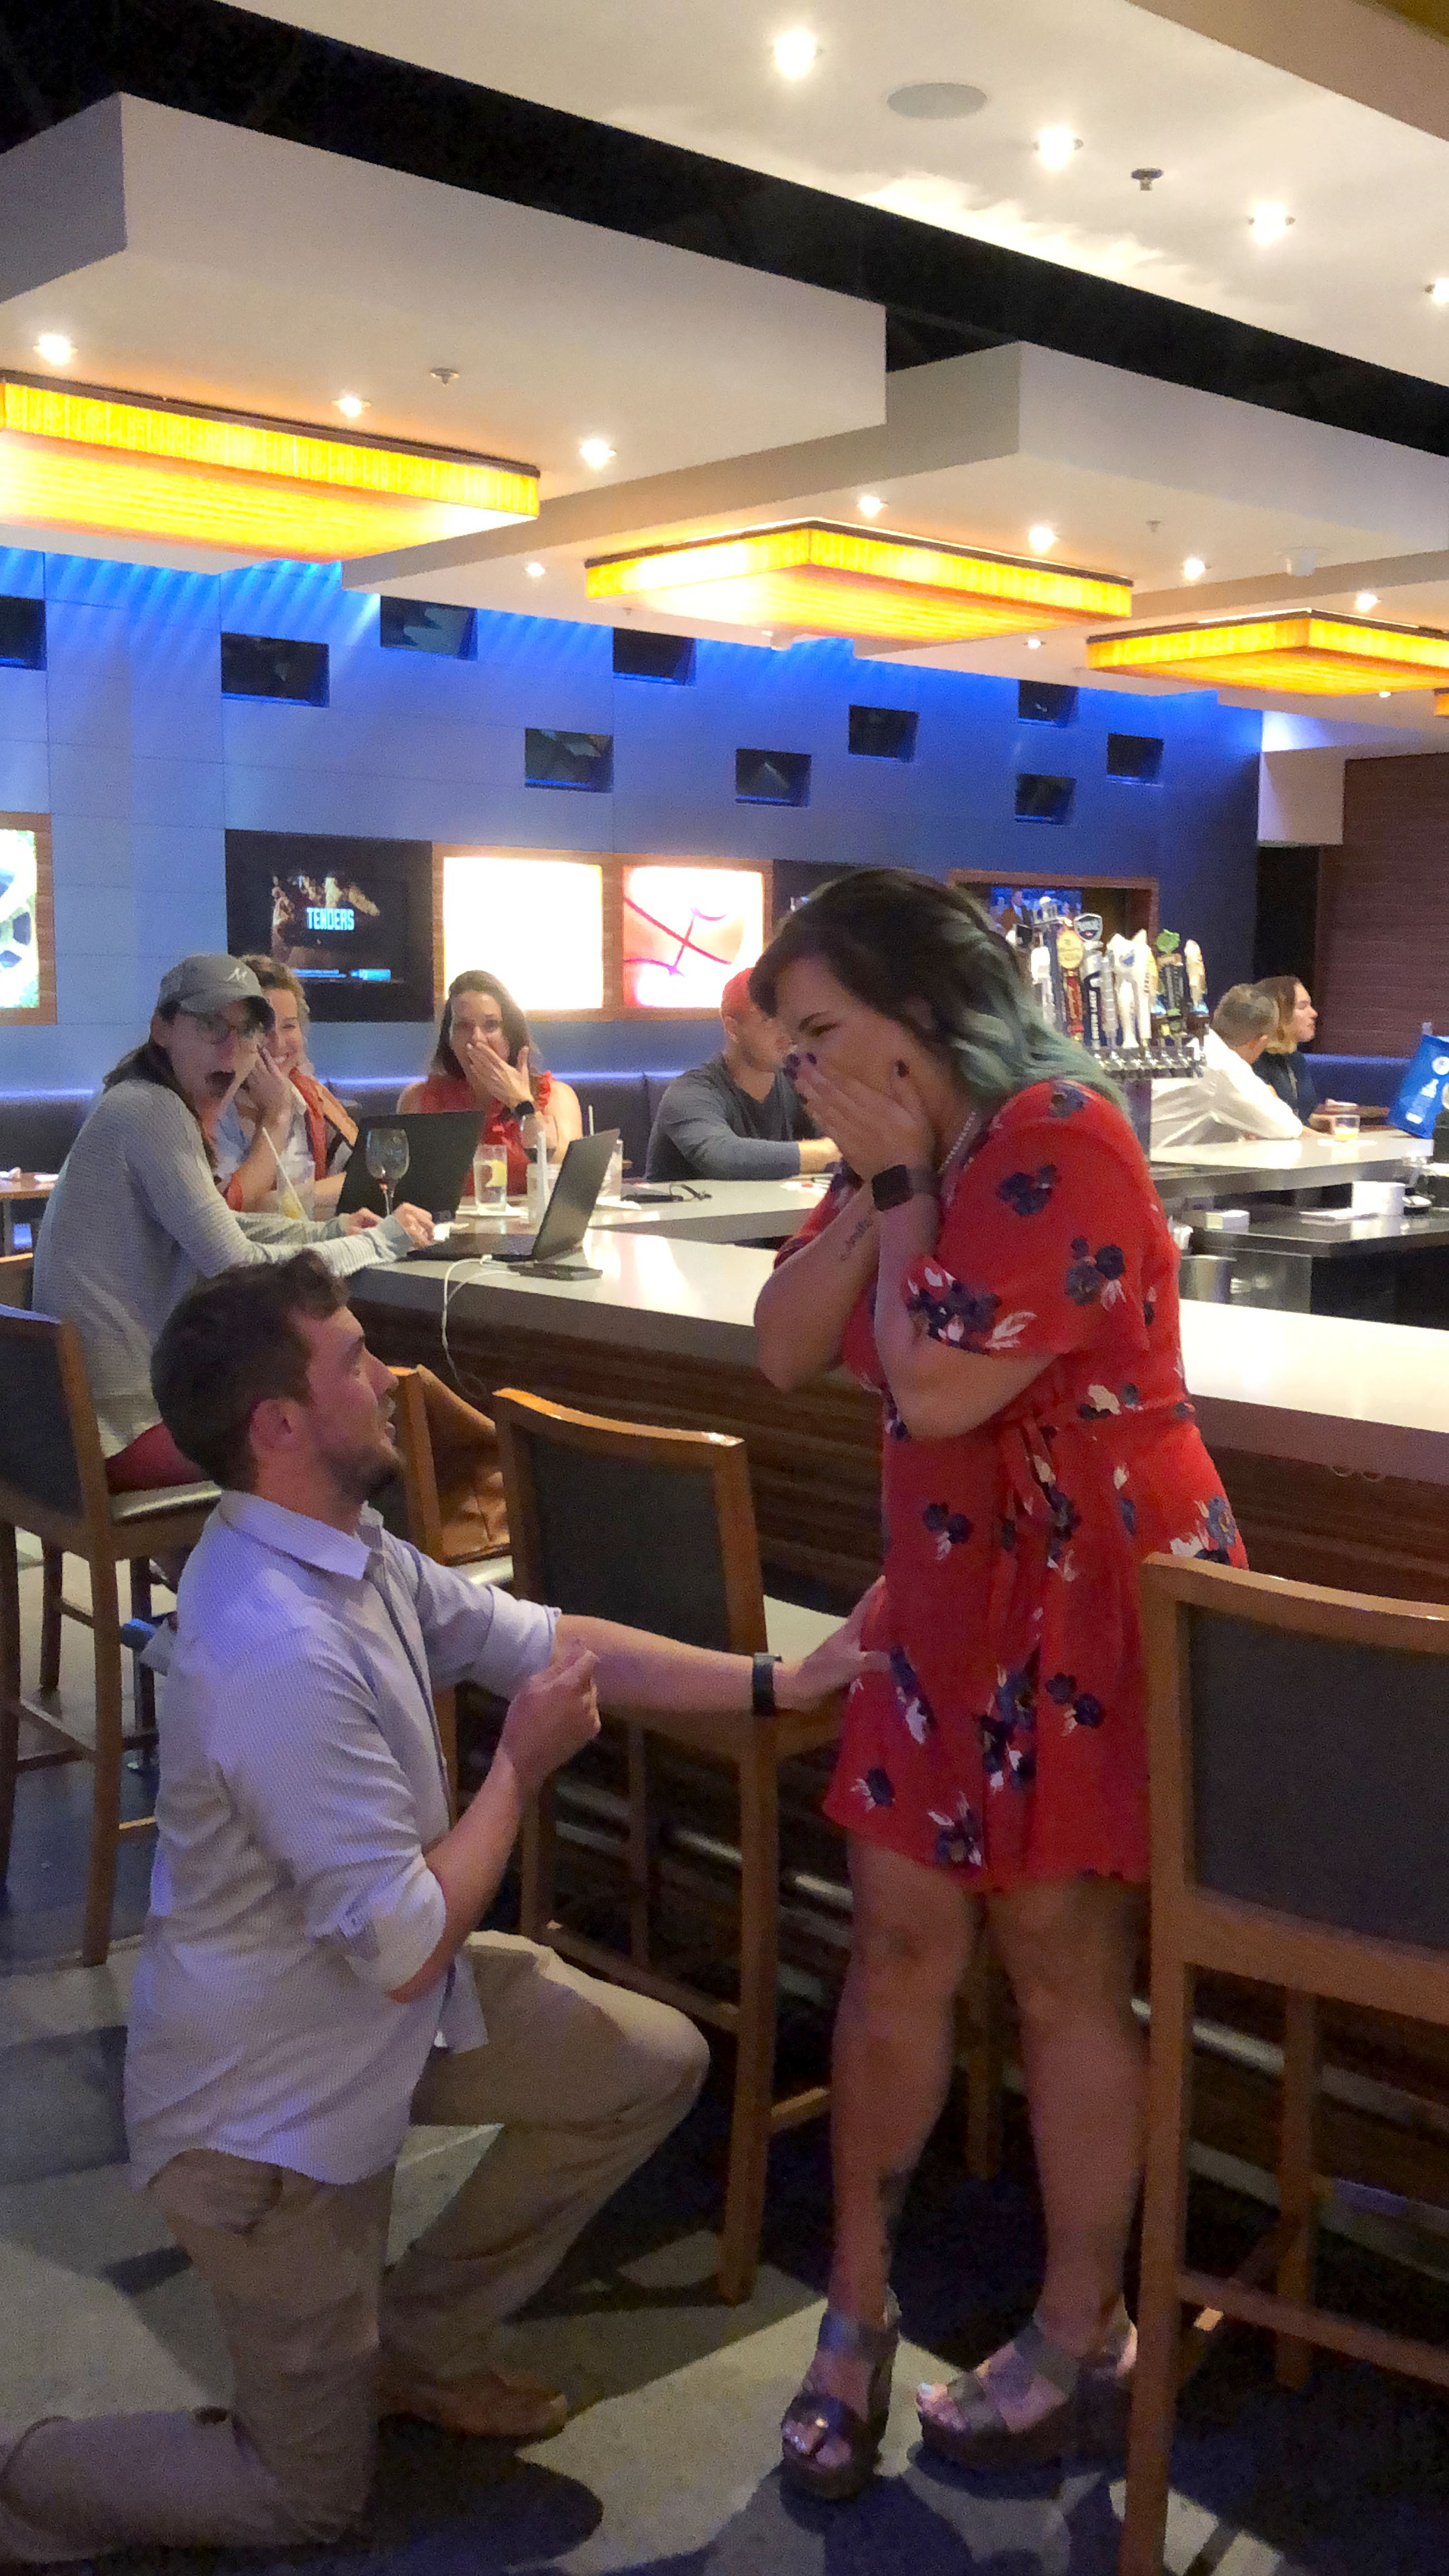 Couple fake engagement to get free drinks in bar